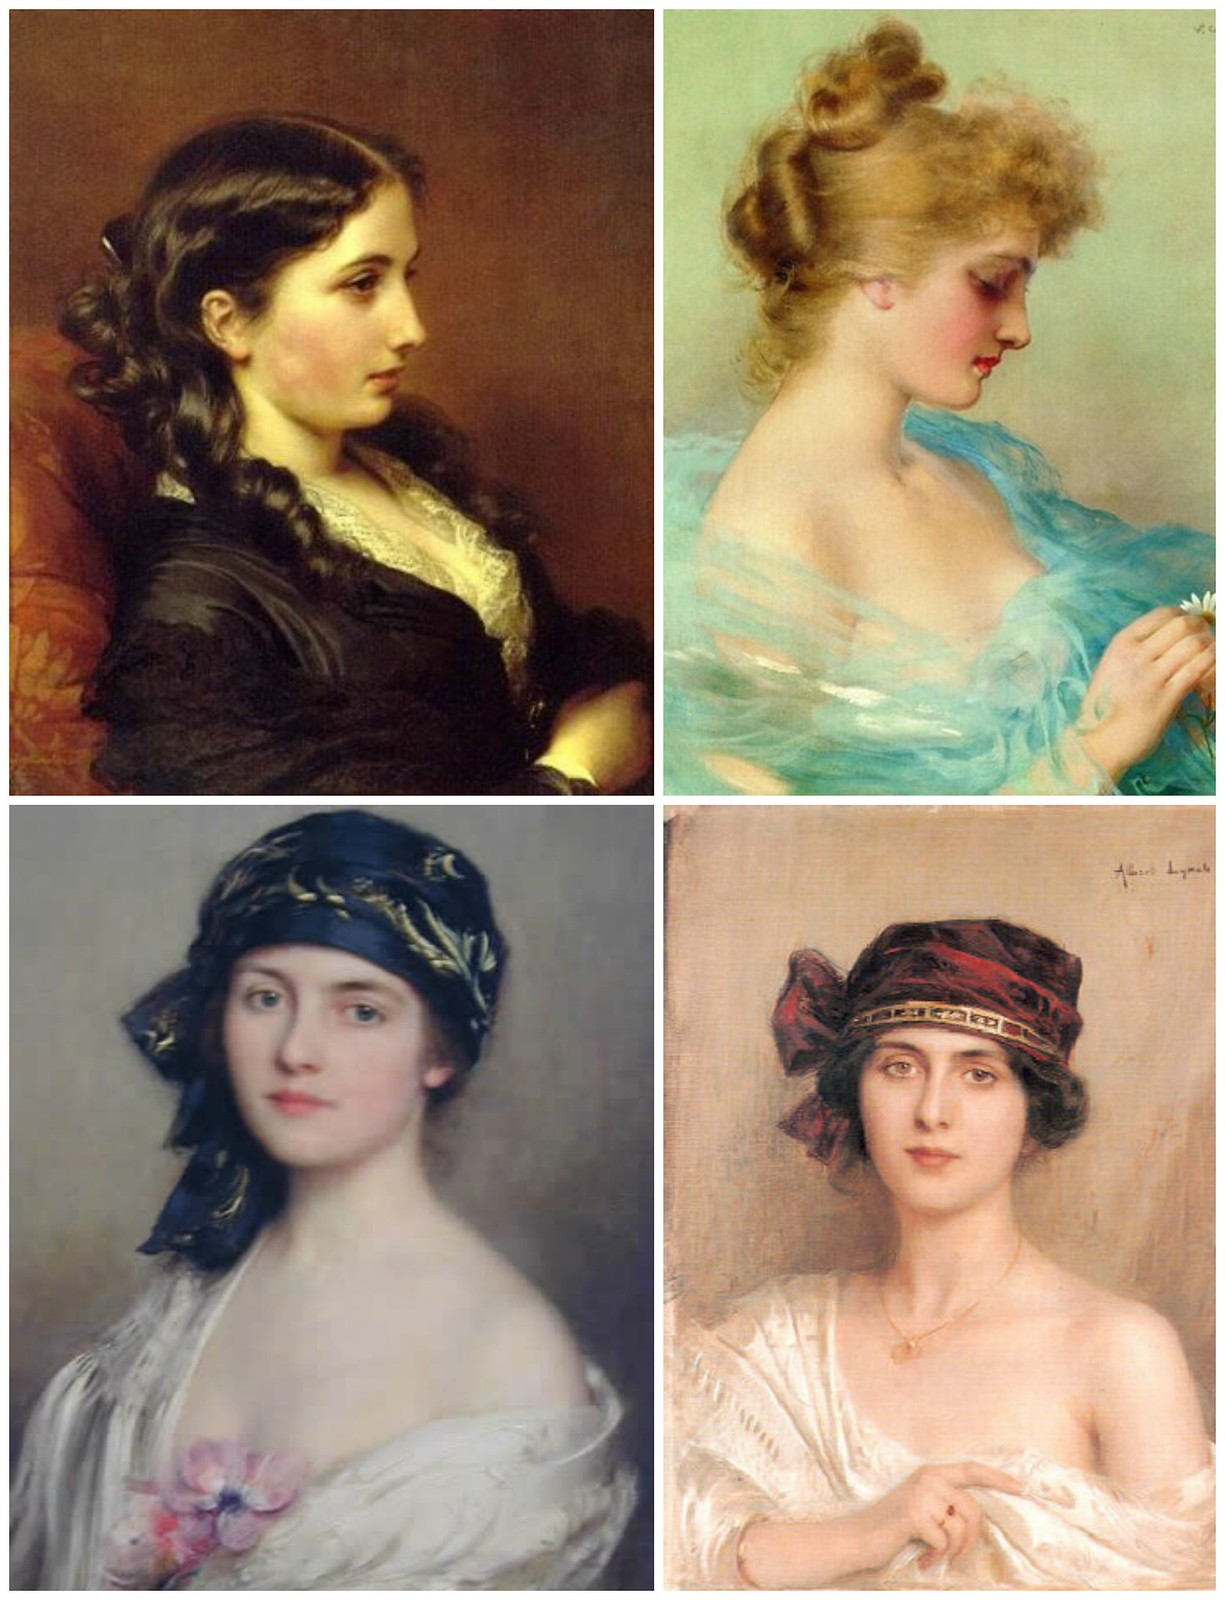 Other paintings of society women from Albert Lynch